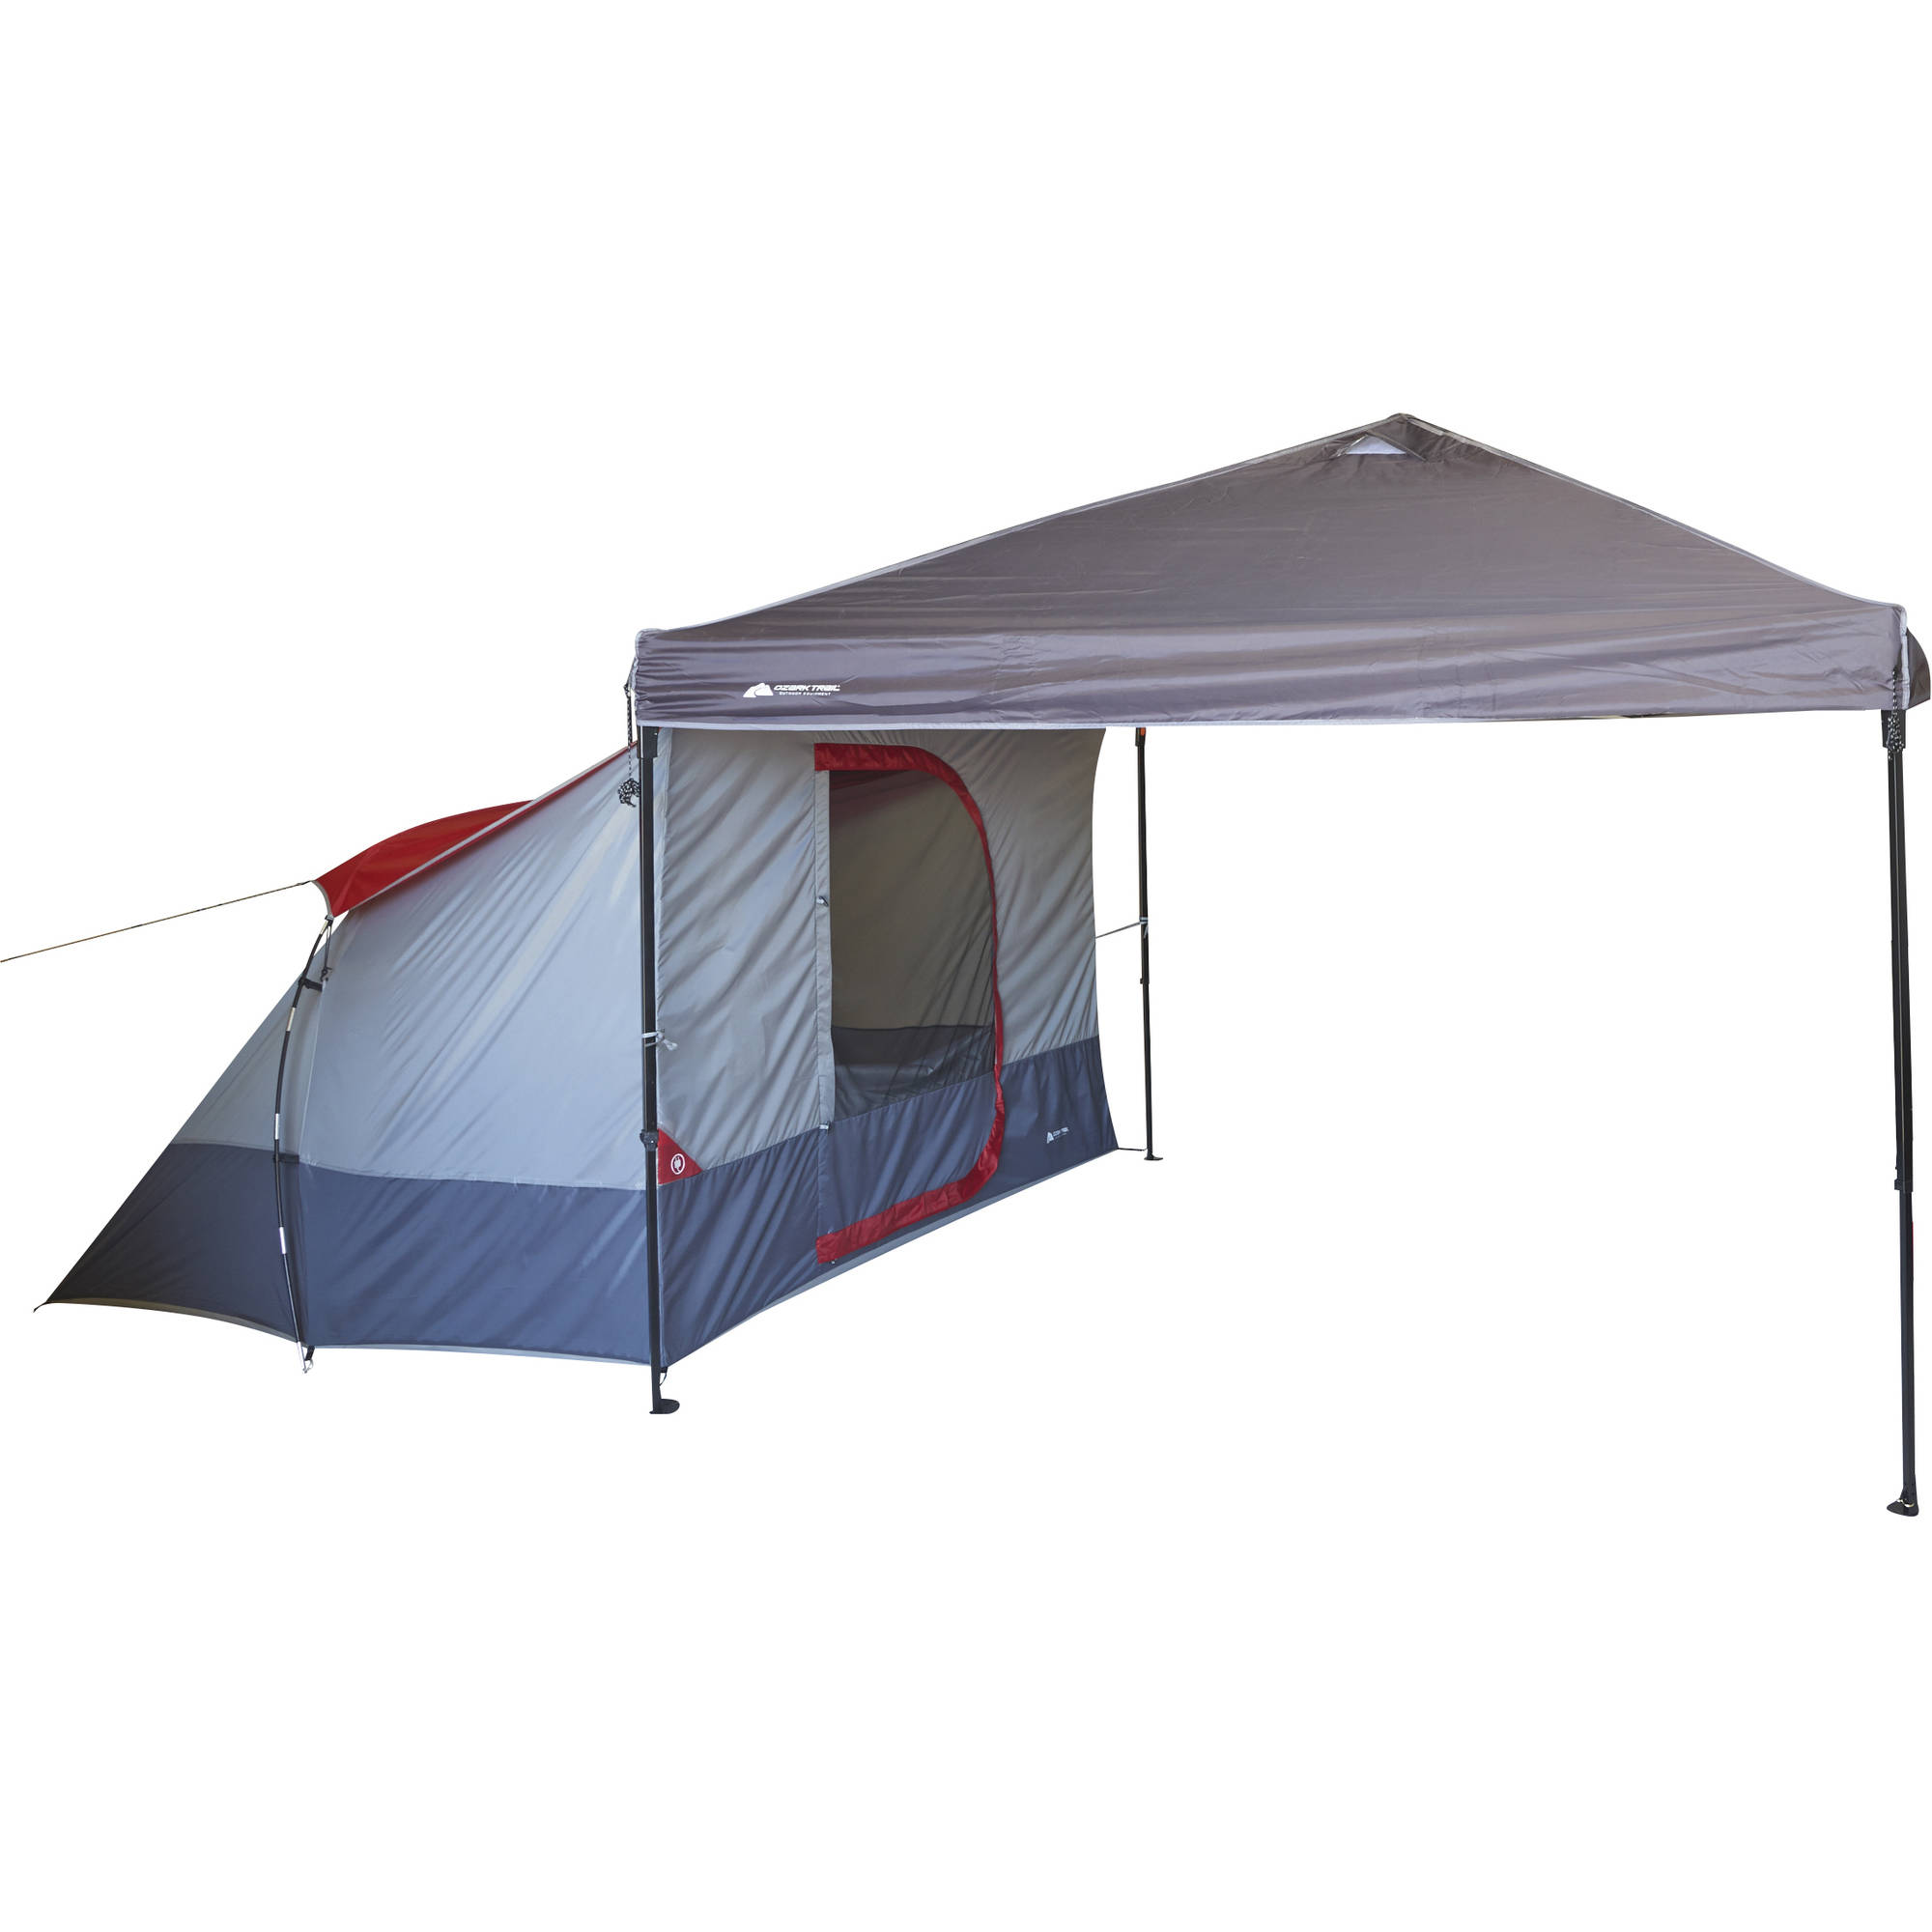 Ozark Trail 4-Person 9 x 7 ft. ConnecTent™ for Straight-leg Canopy